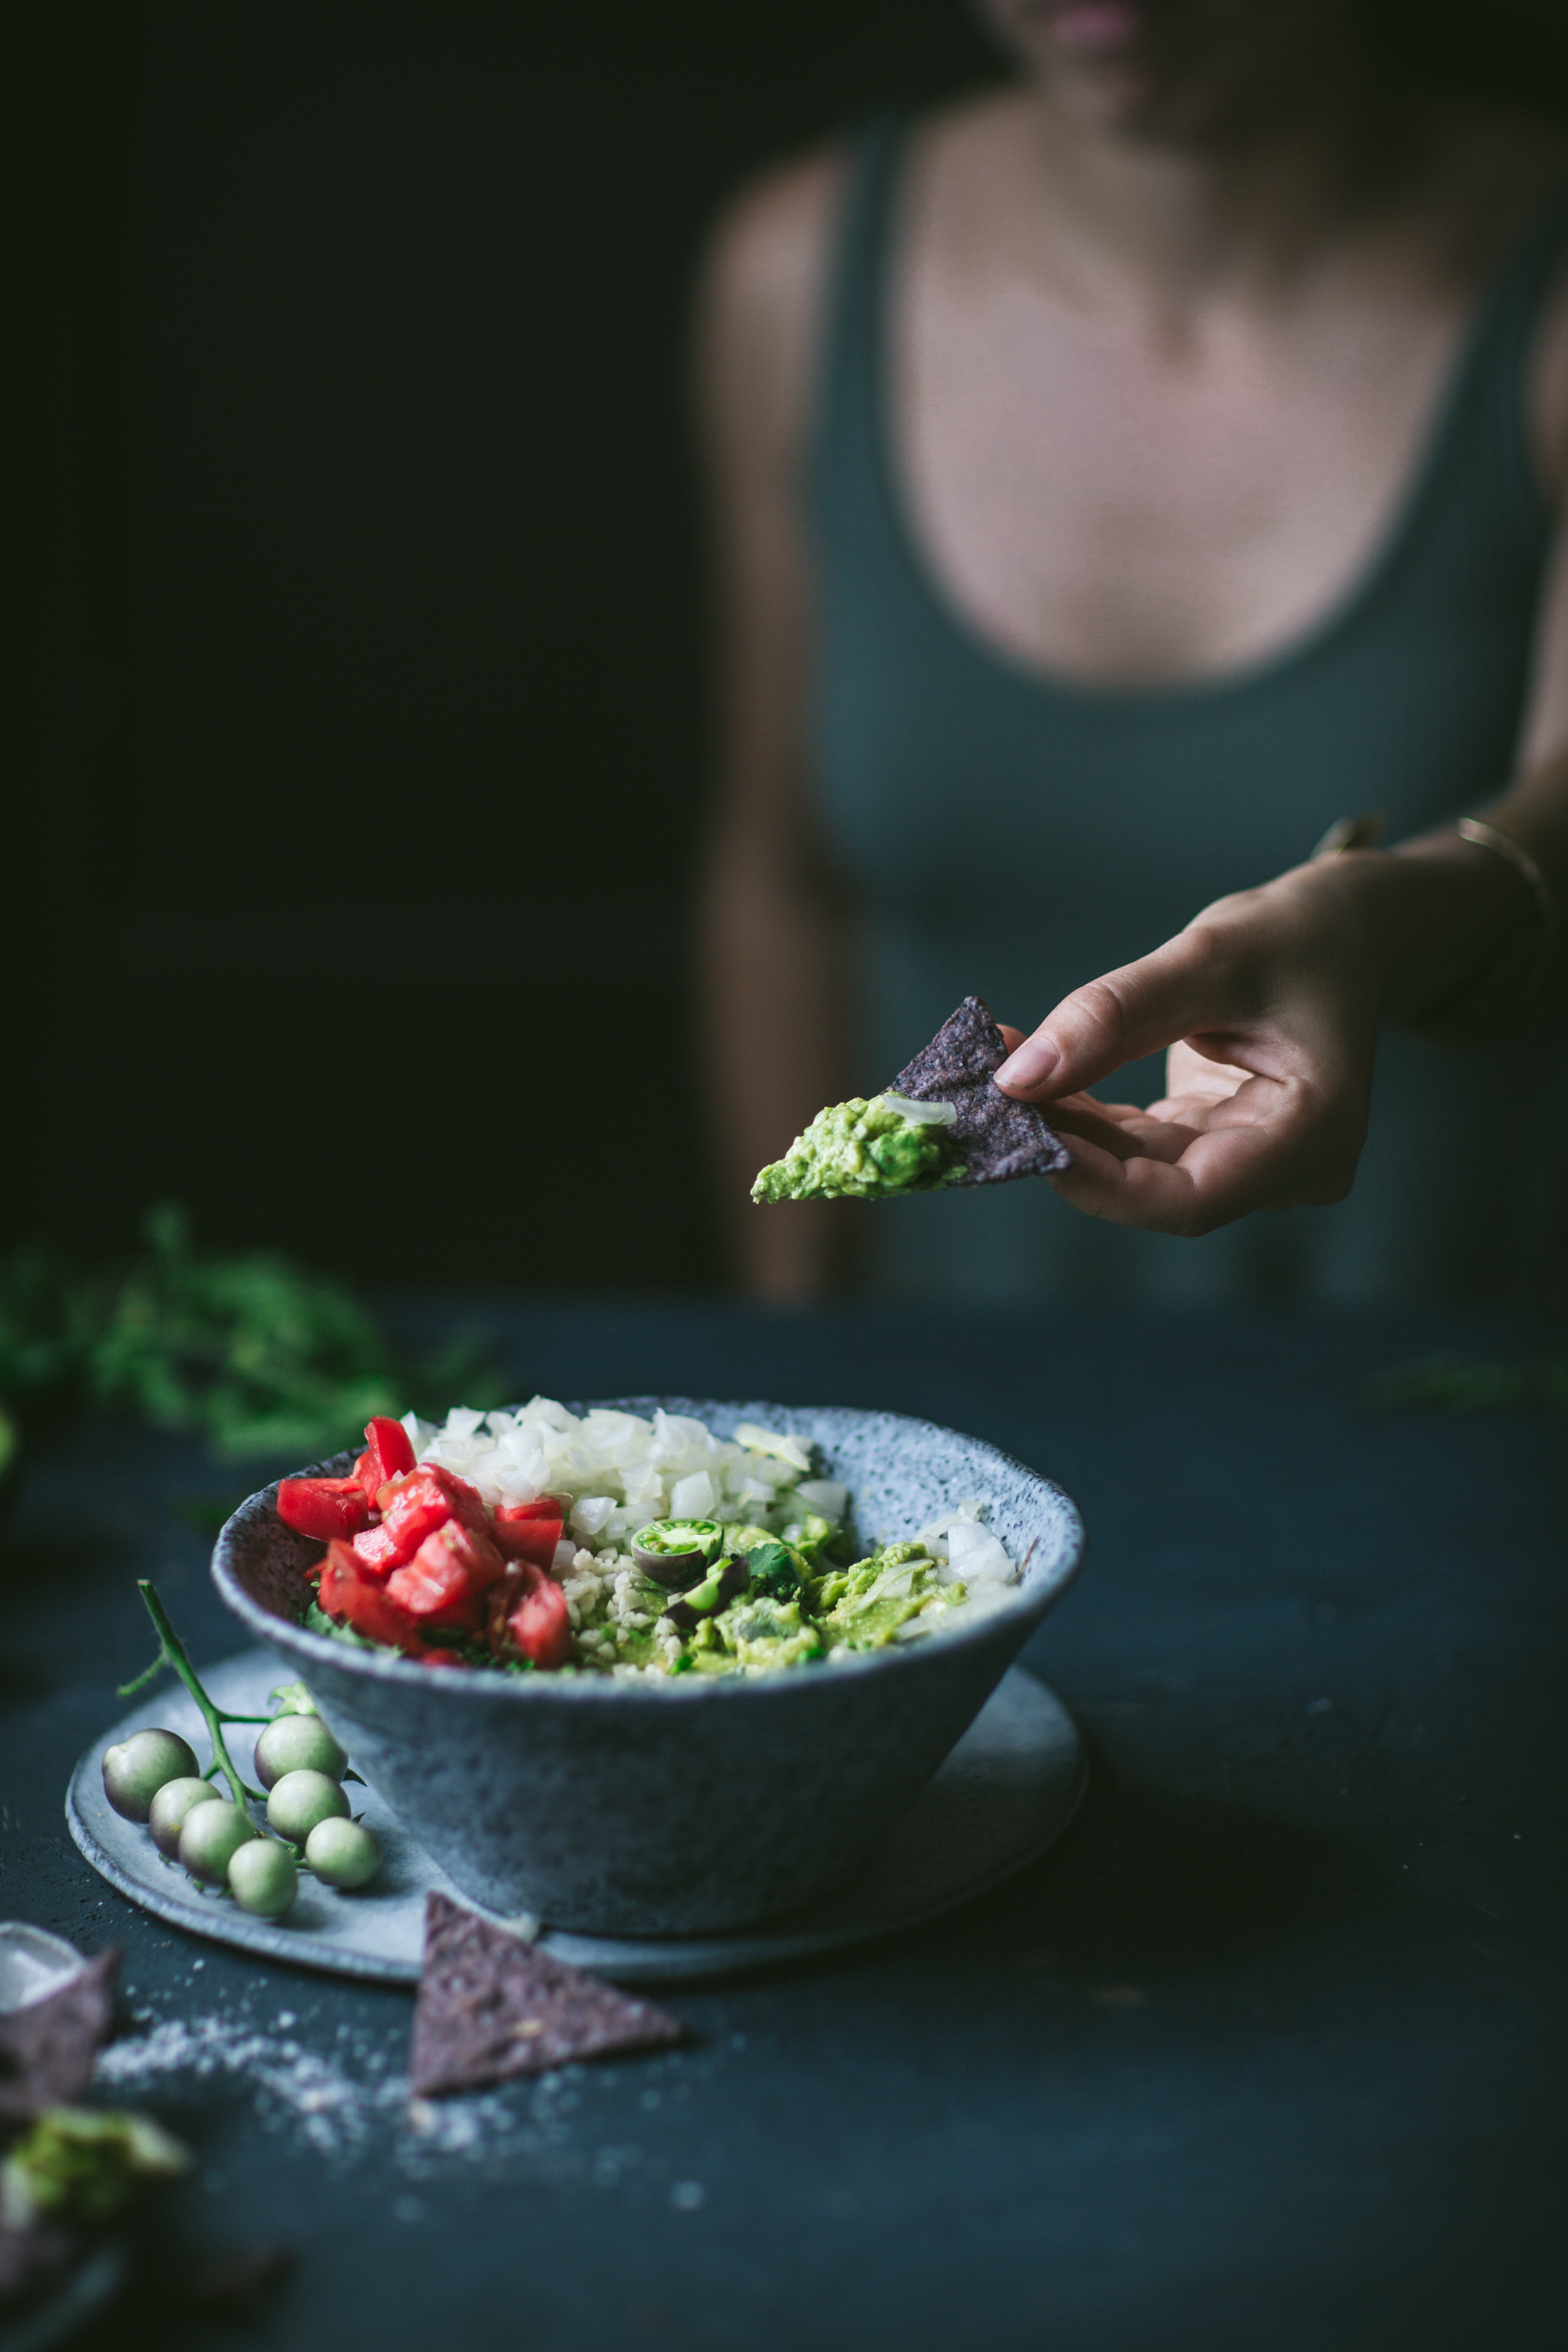 How to Make Guacamole, and easy summer recipe by Eva Kosmas Flores | Adventures in Cooking